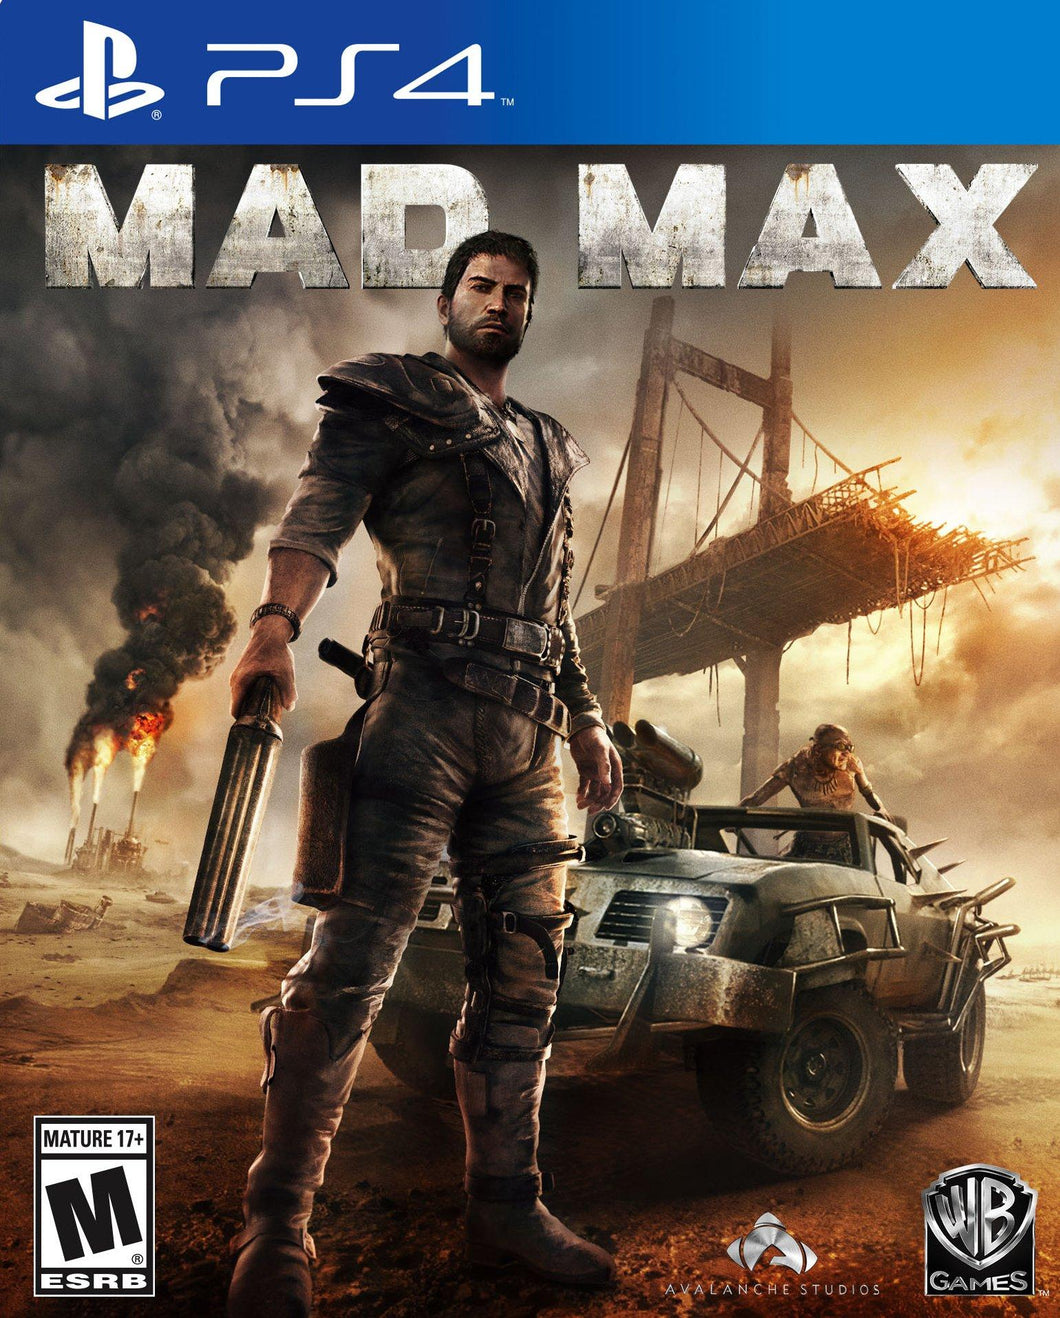 Mad Max - PS4 - Playstation 4 - (Used)